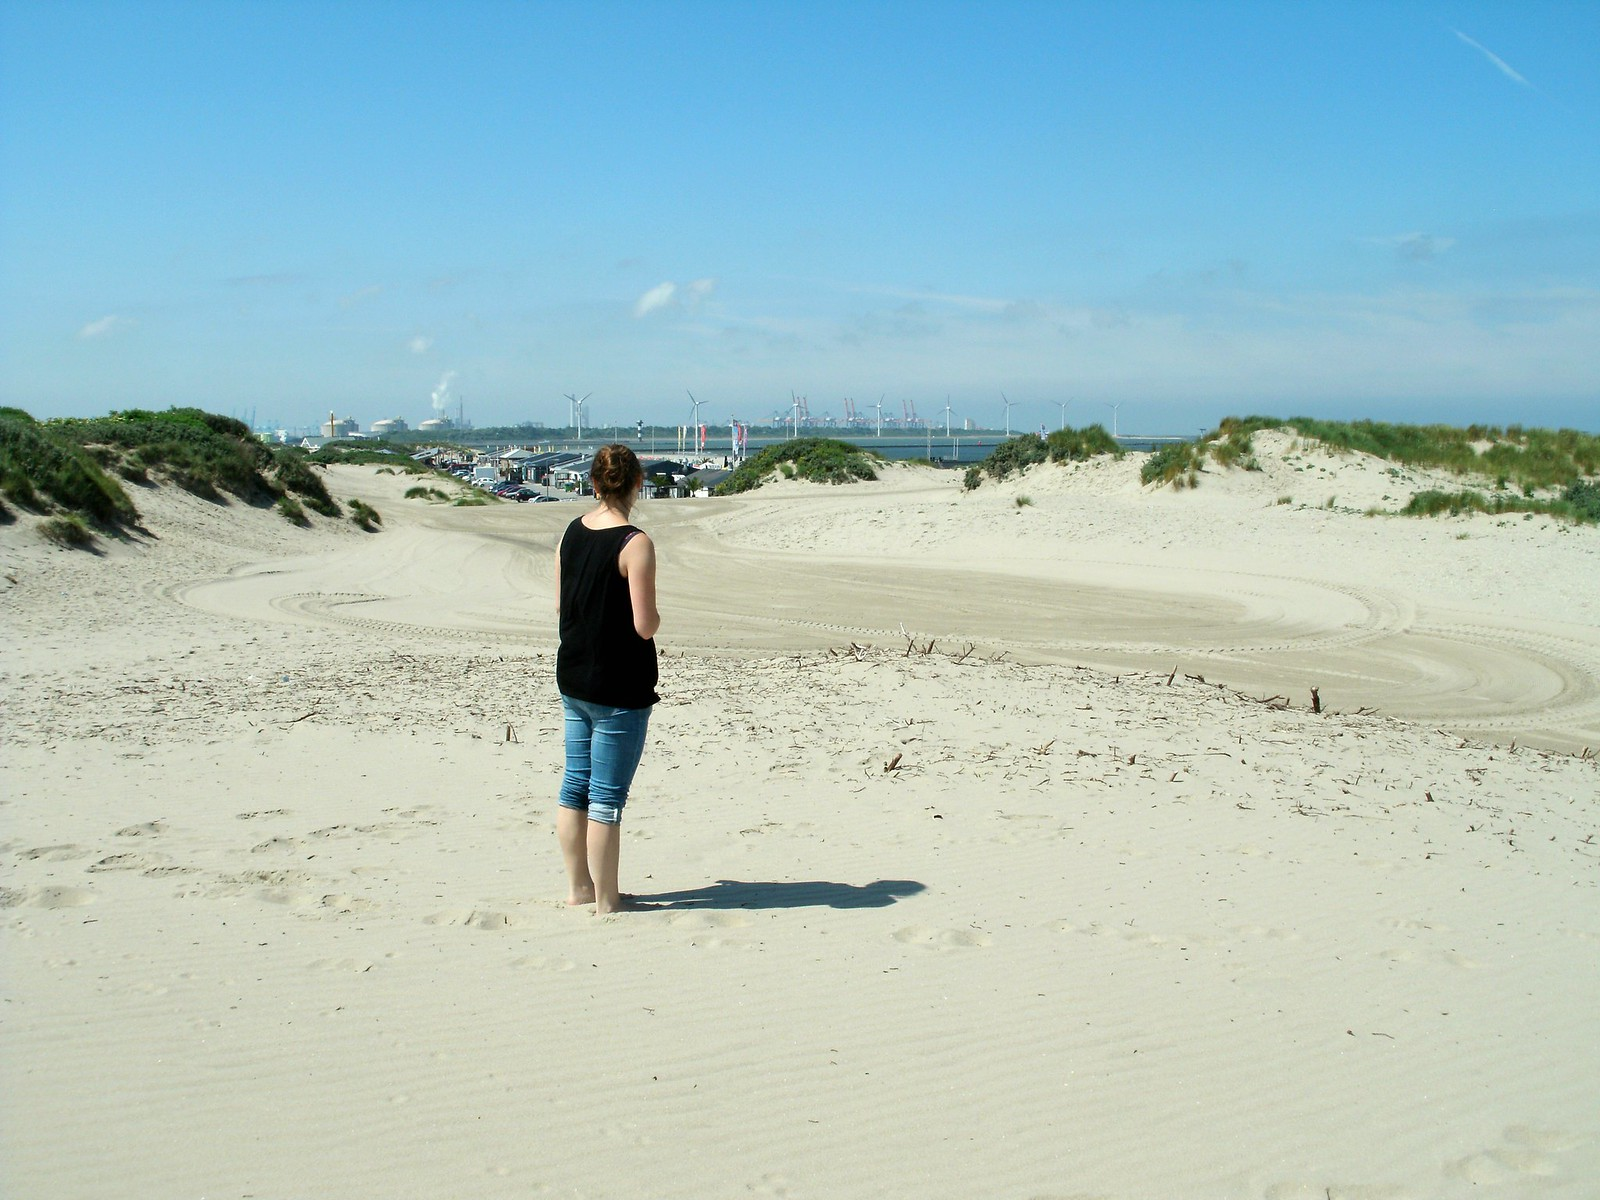 A barefoot girl at the beach looks over at the windmills in the distance.